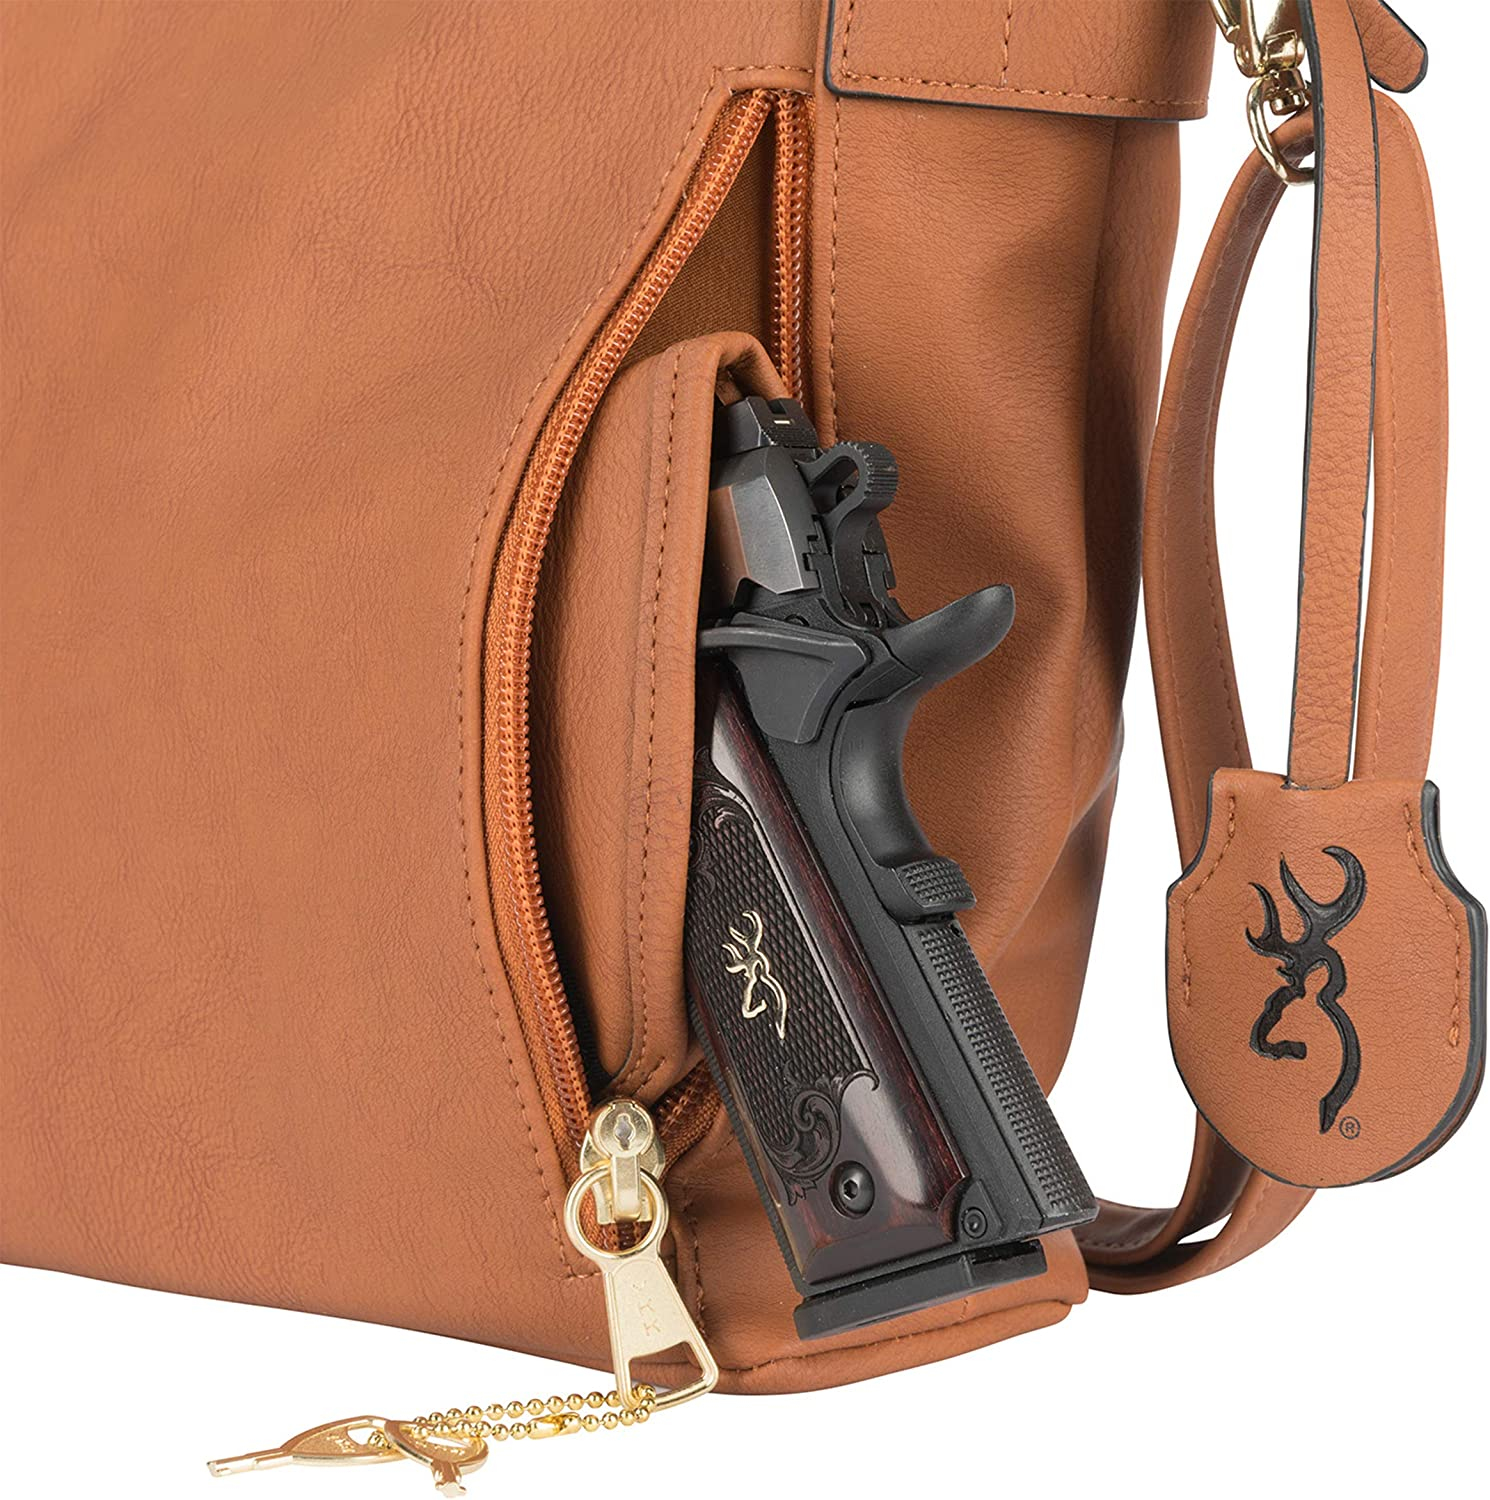 Premium Holstered Crossbody Handbag with Safety Locking Option Browning Womens Catrina Concealed Carry Purse